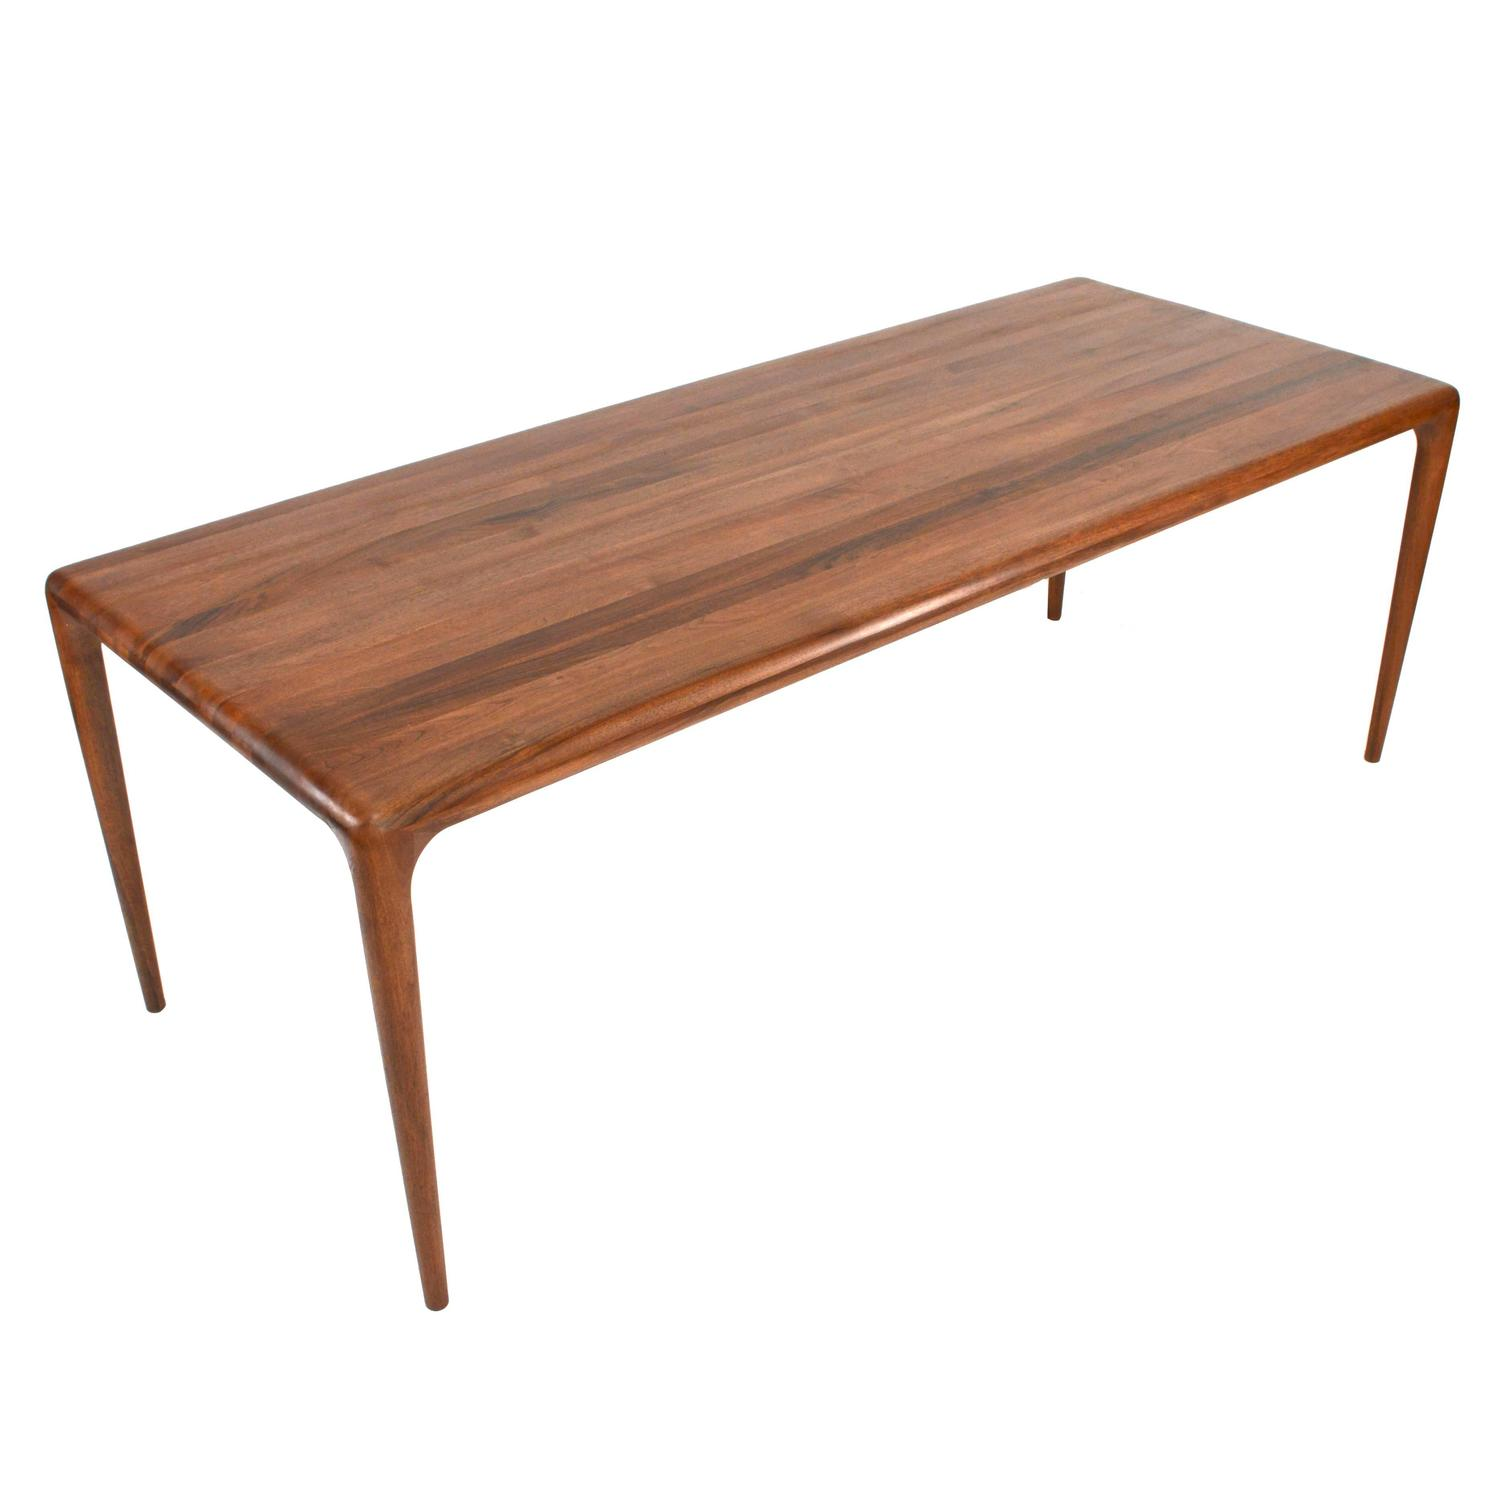 Artisan Collection Dining Table in European Walnut For Sale at 1stdibs